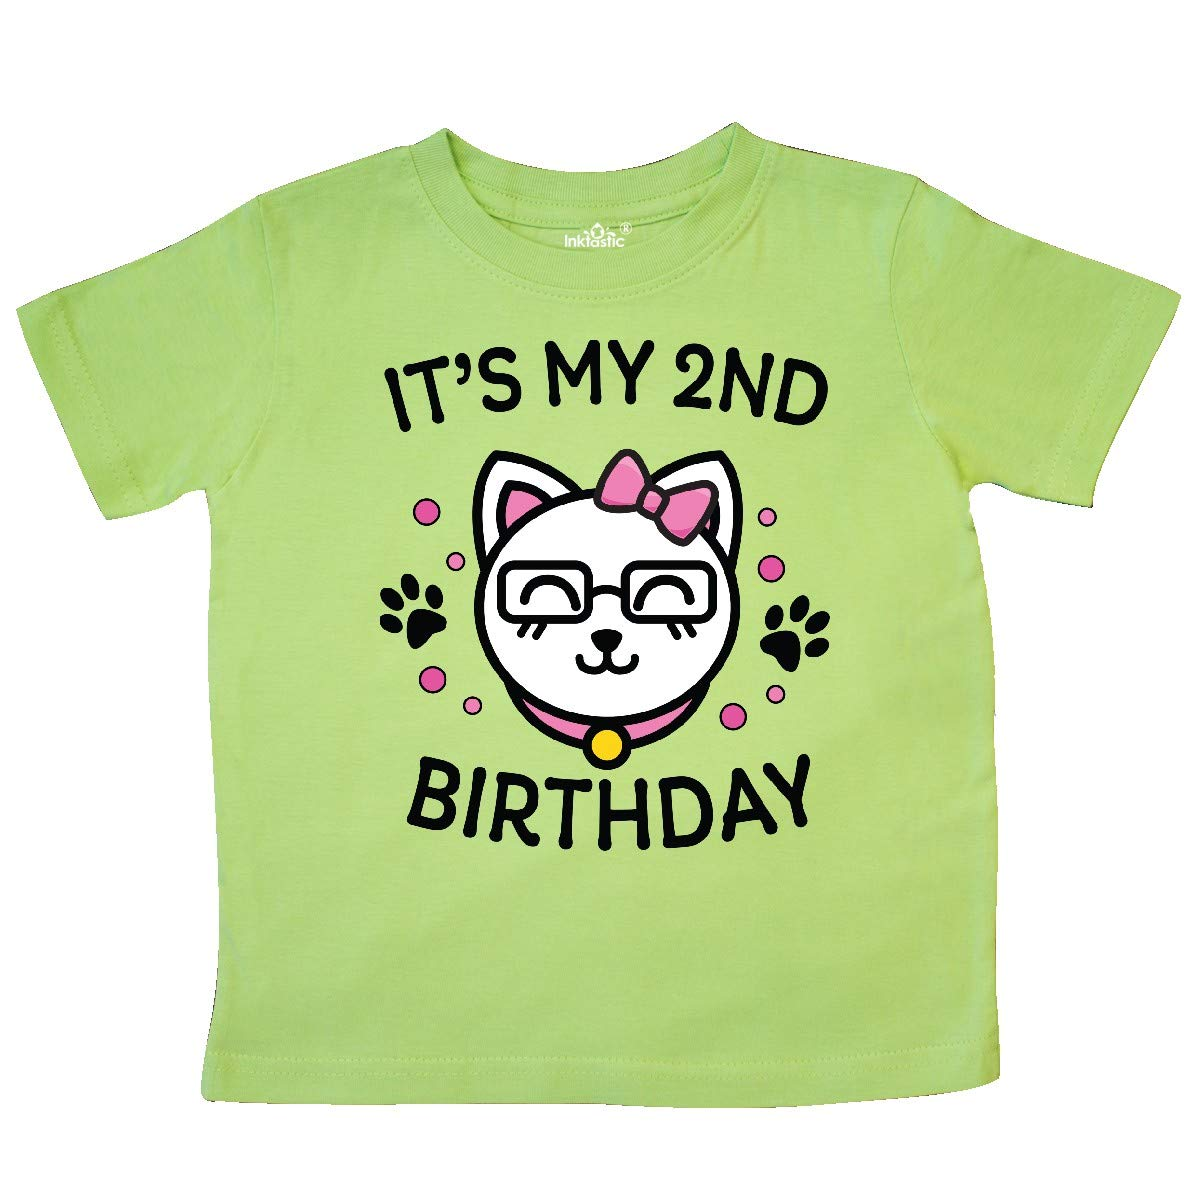 inktastic Its My 2nd Birthday with Cat in Glasses Toddler T-Shirt